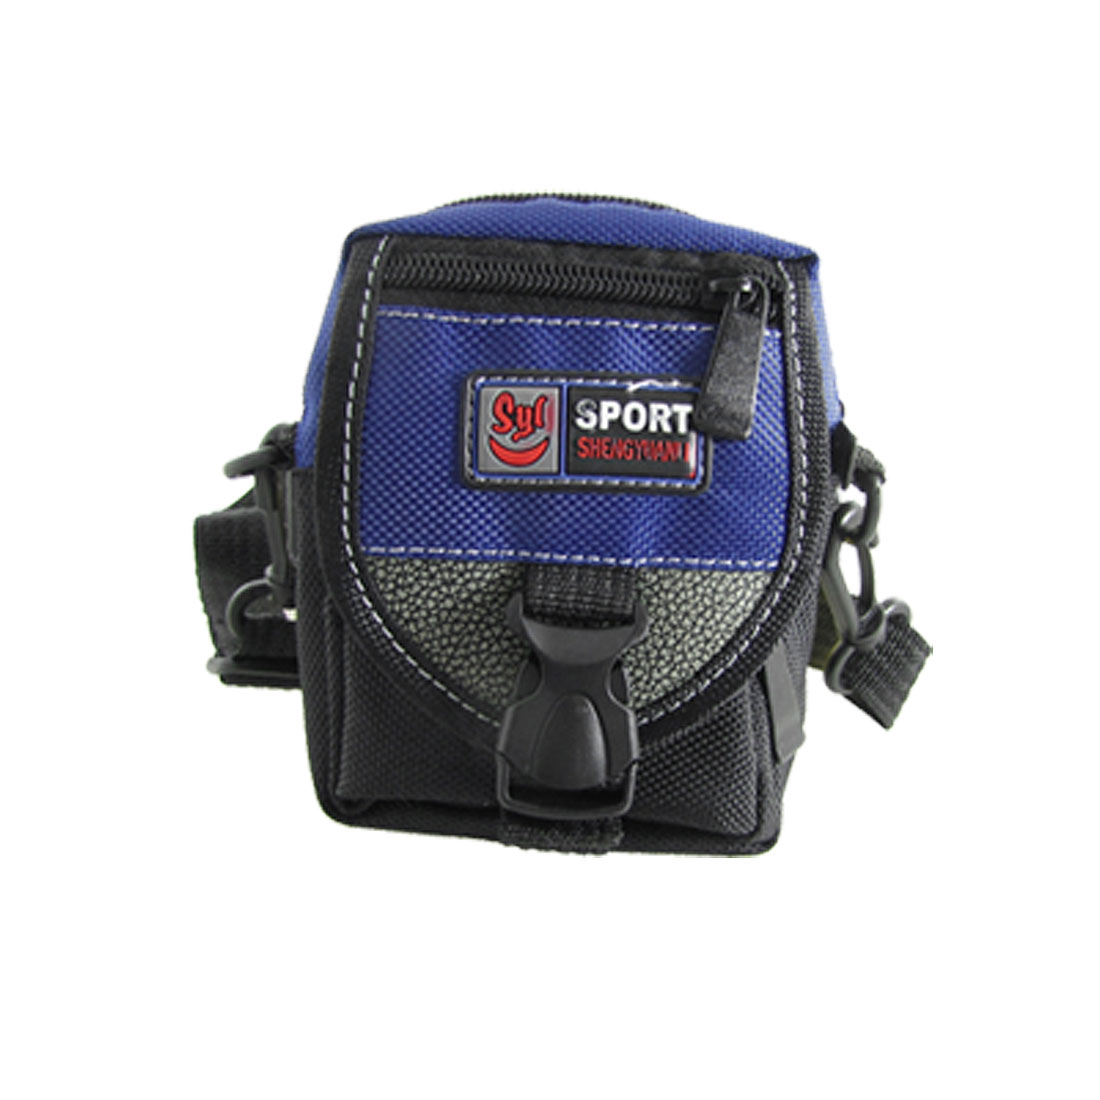 Black Blue Zipper Nylon Digital Camera Pouch Bag with Strap